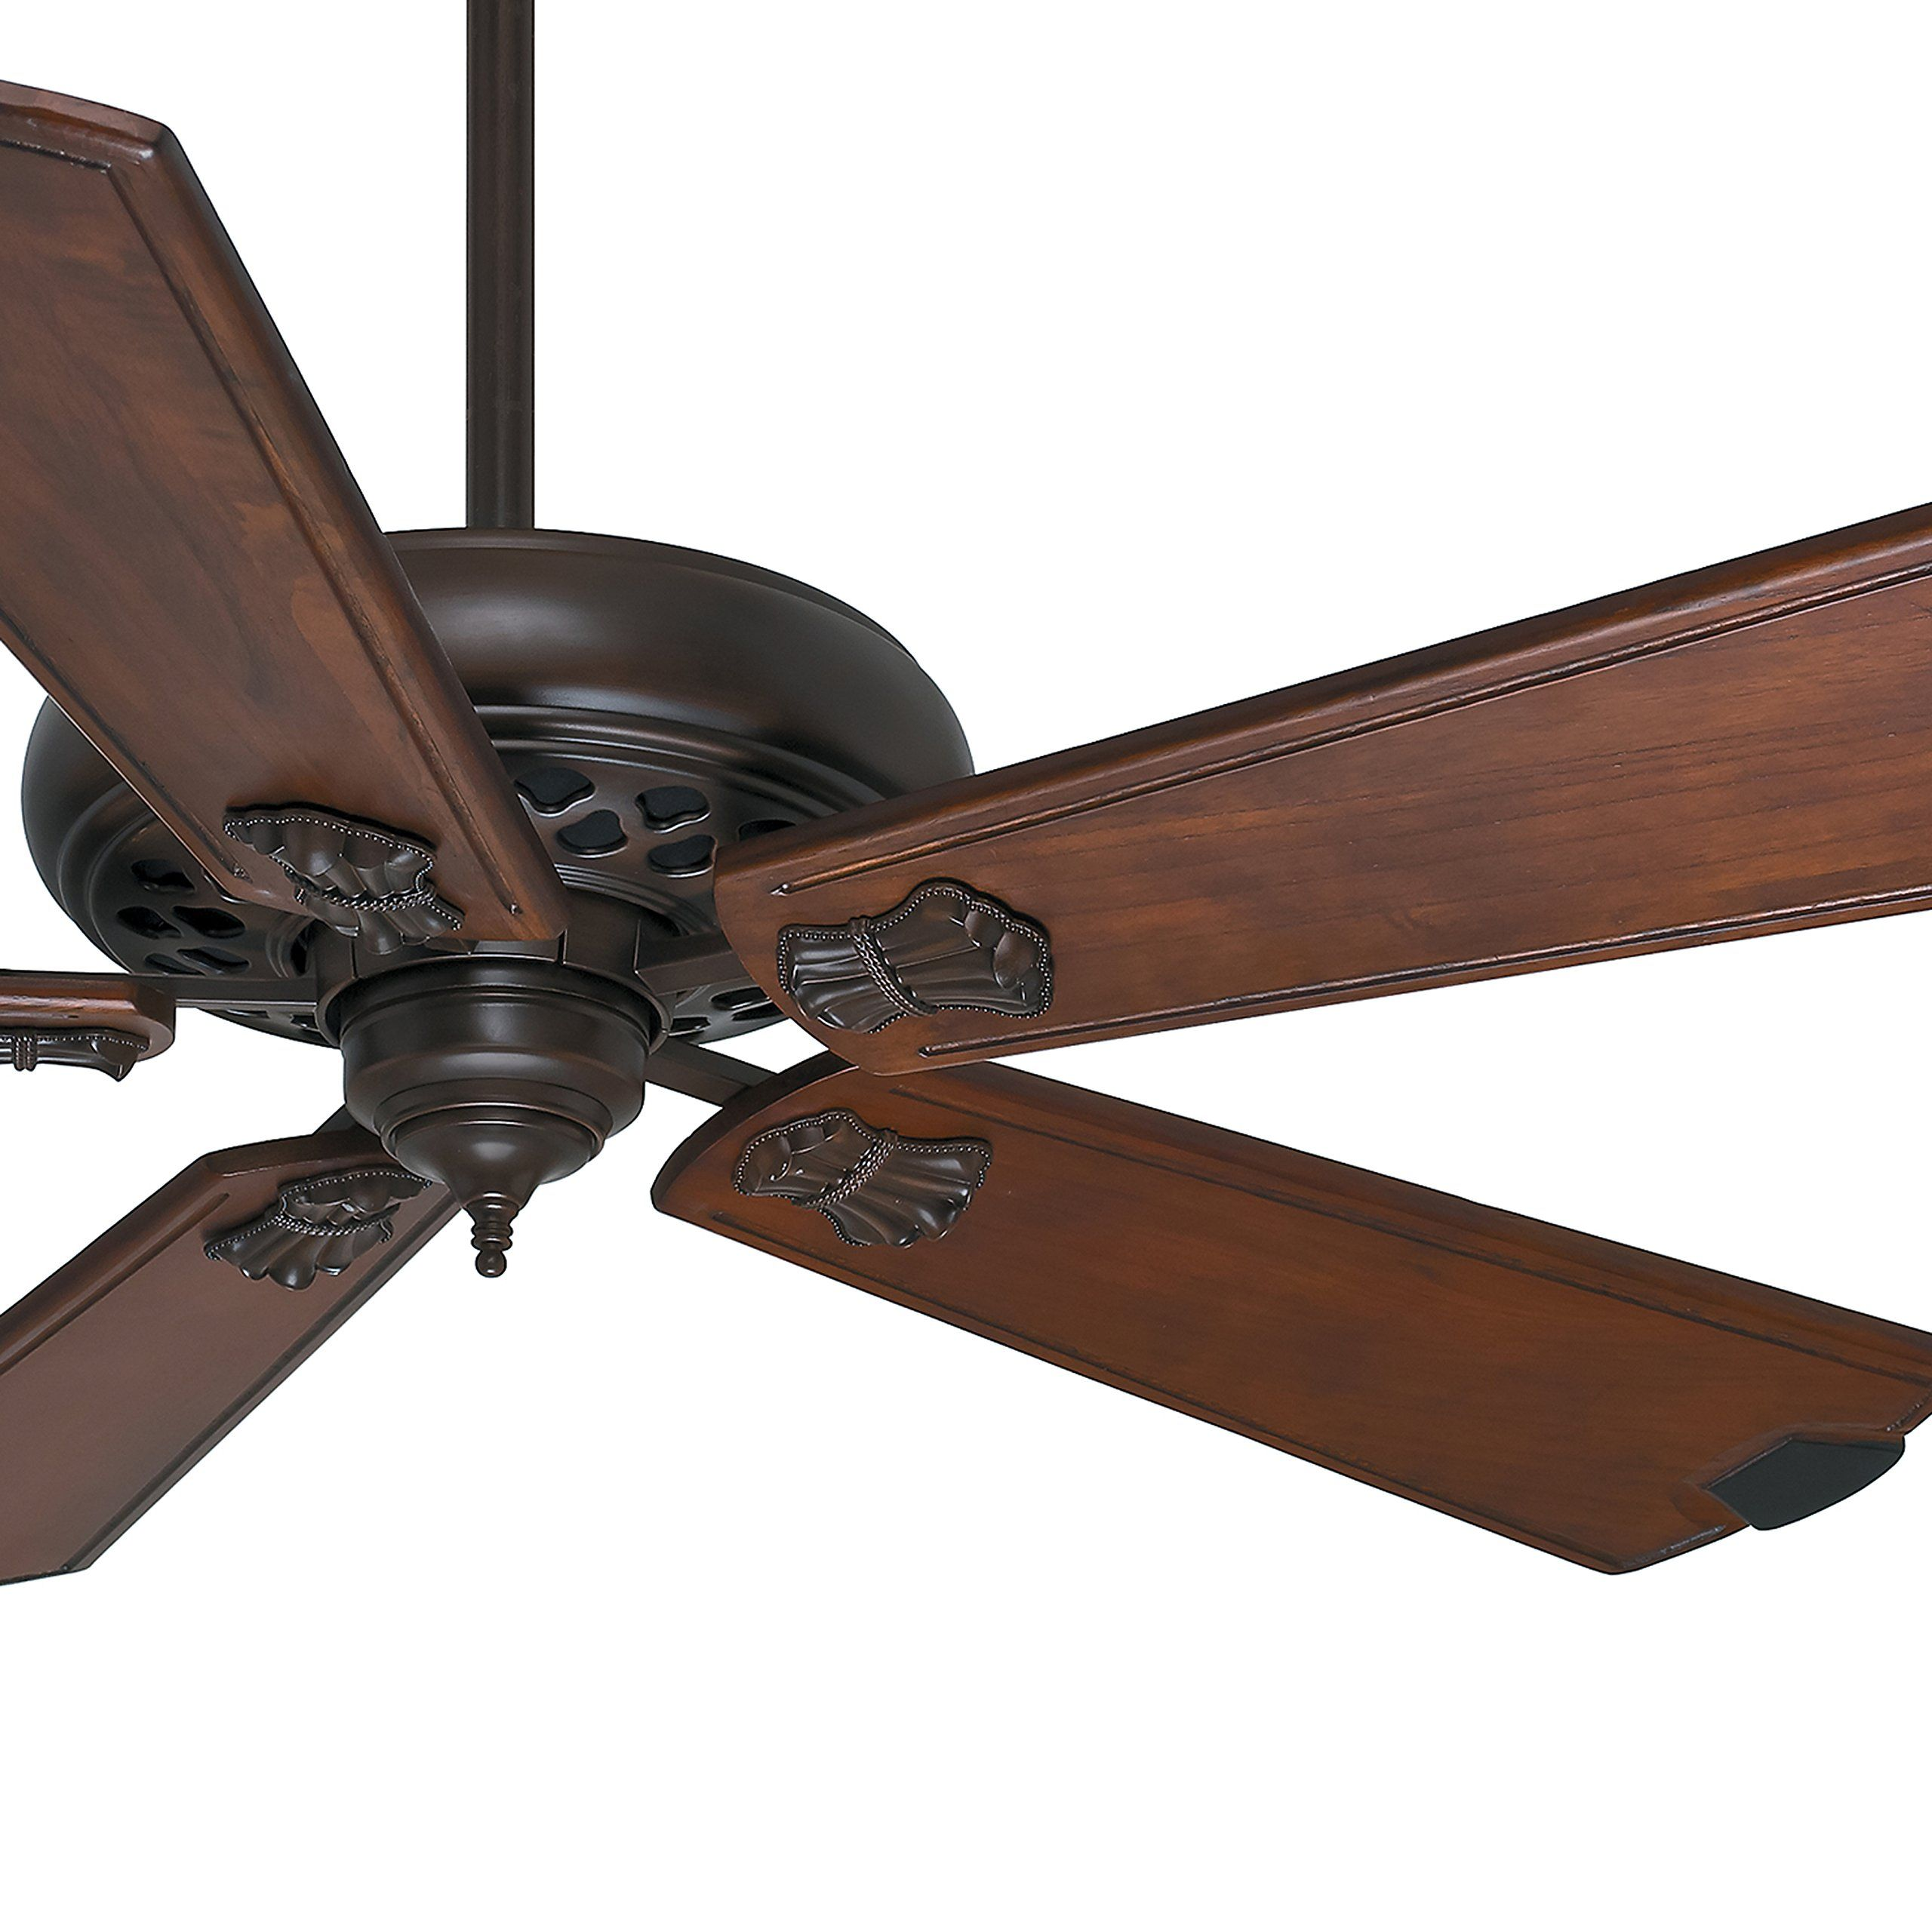 Casablanca traditional 60 in ceiling fan in brushed cocoa with 5 ceiling fan in brushed cocoa with 5 walnut blades and wall control certified refurbished you can find more details by visiting the image link mozeypictures Image collections